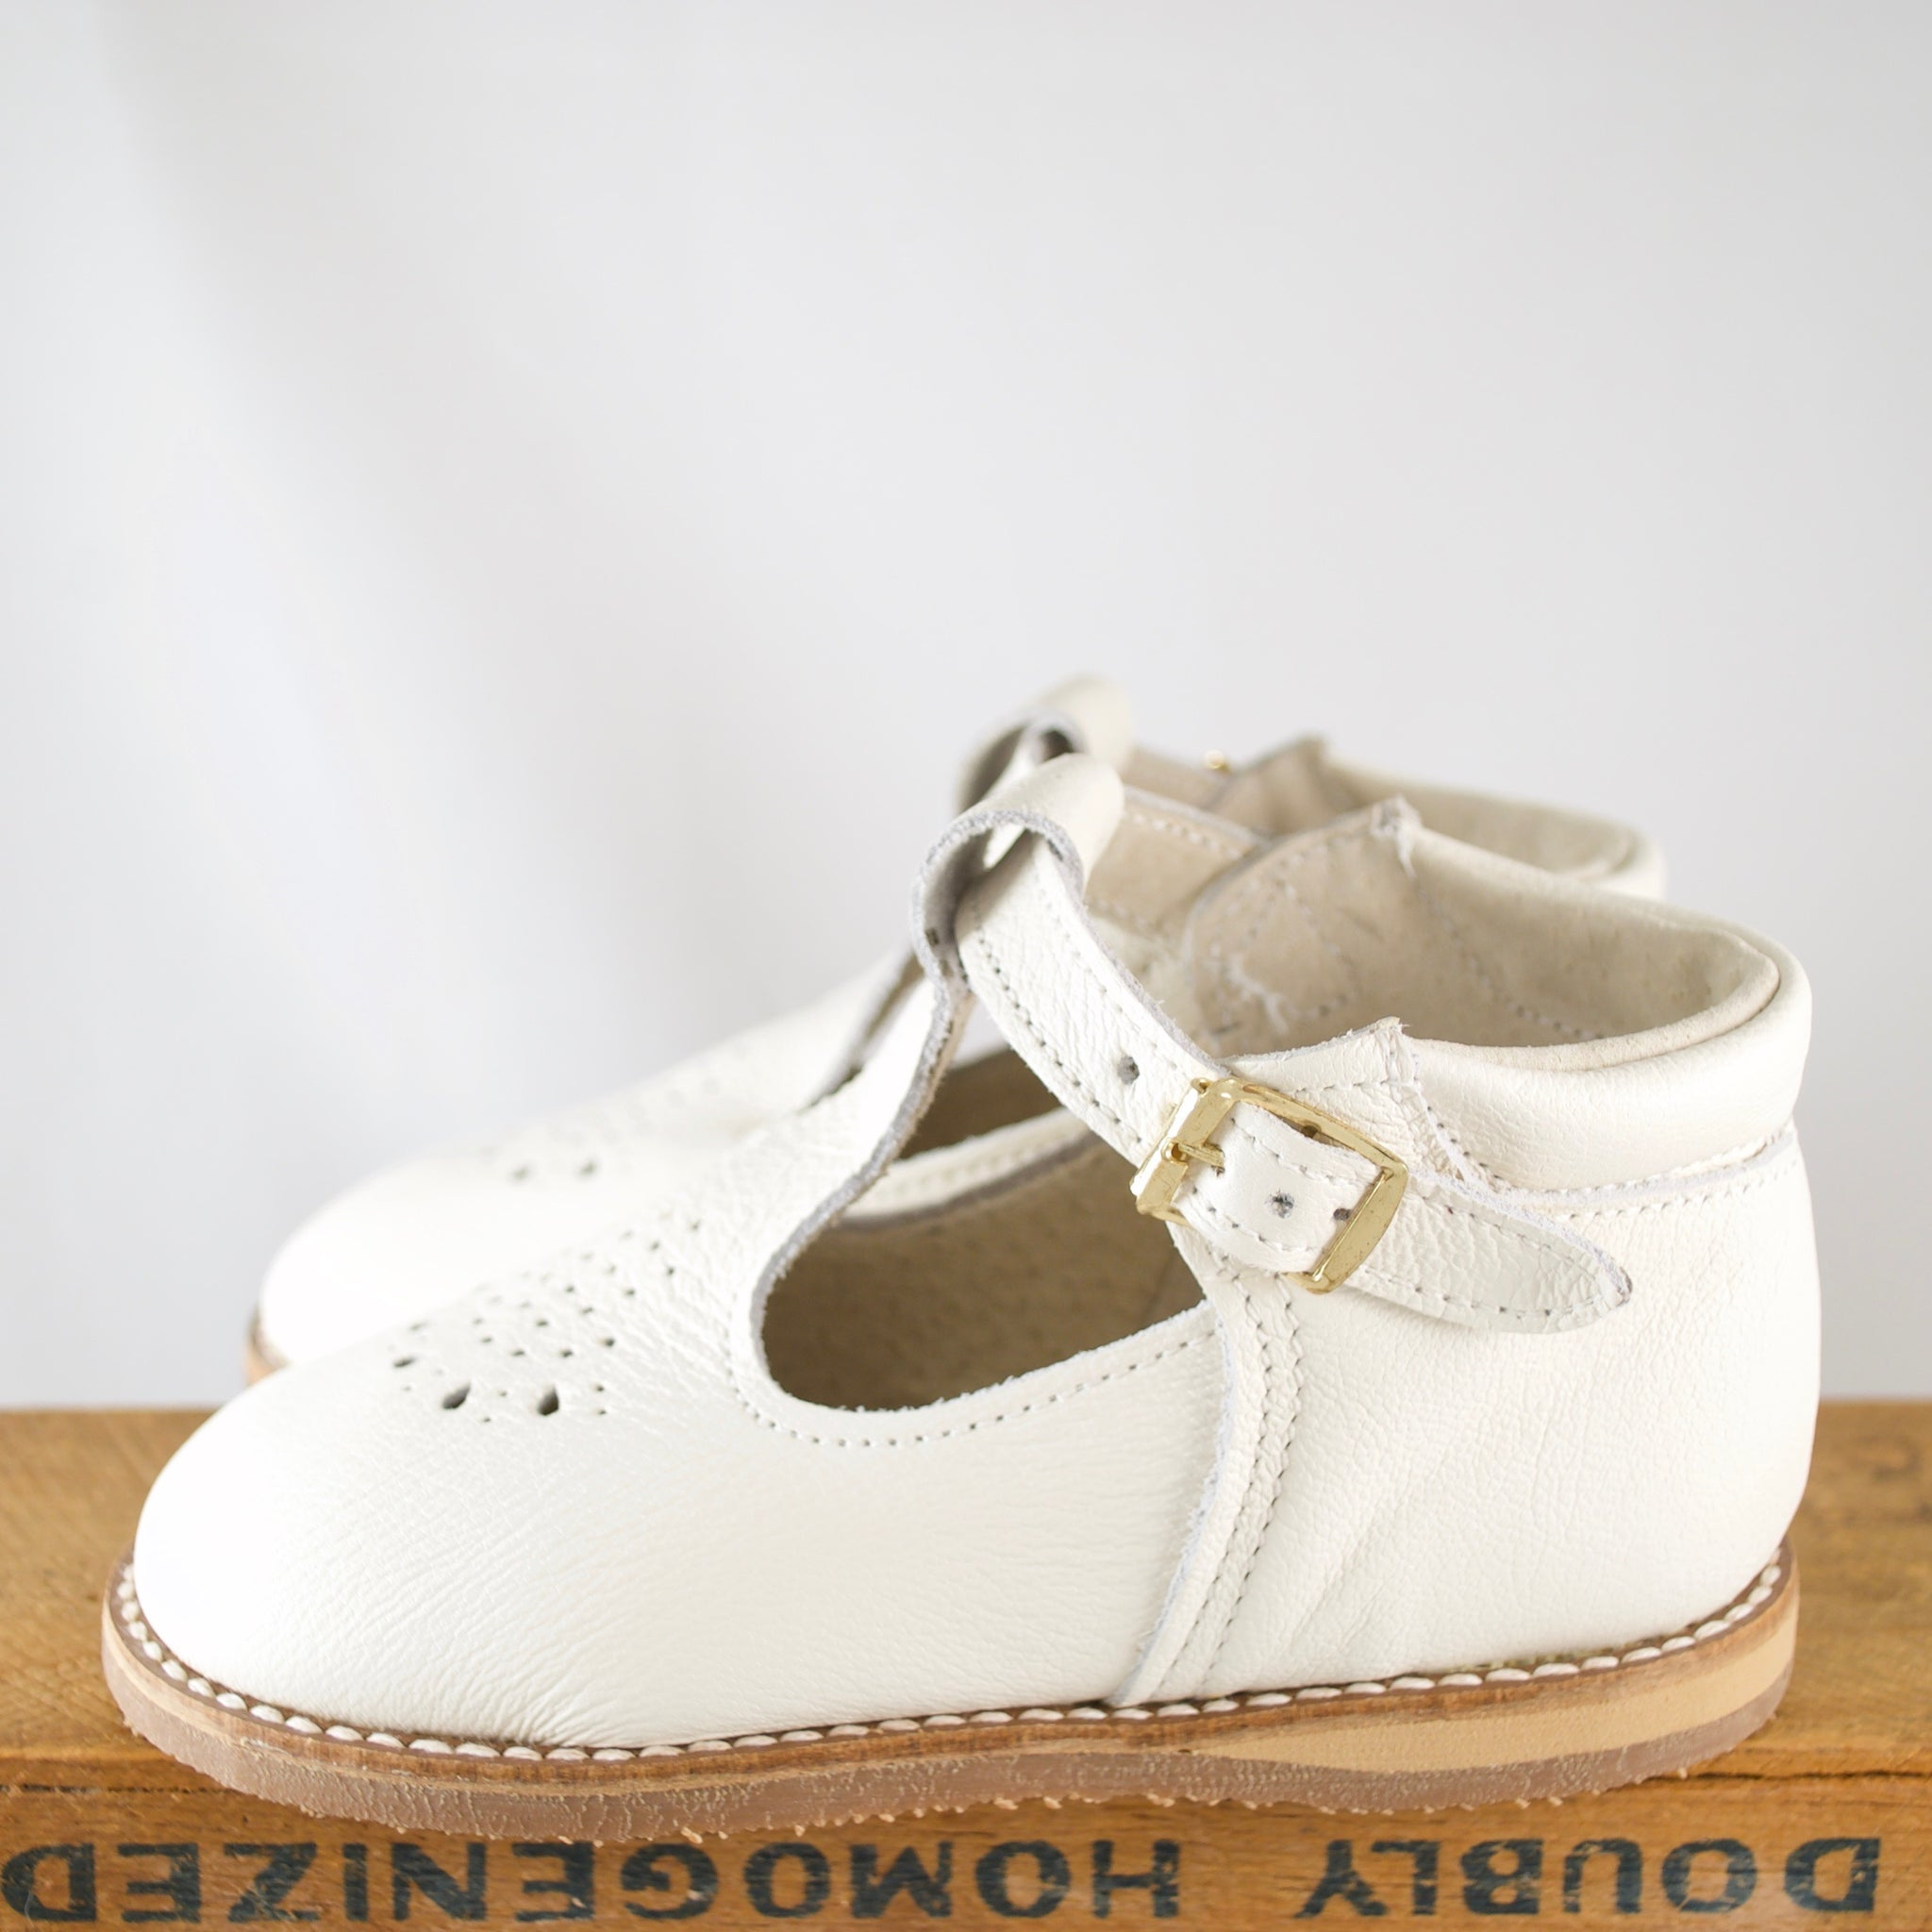 greta t-strap in ivory, pearlized leather